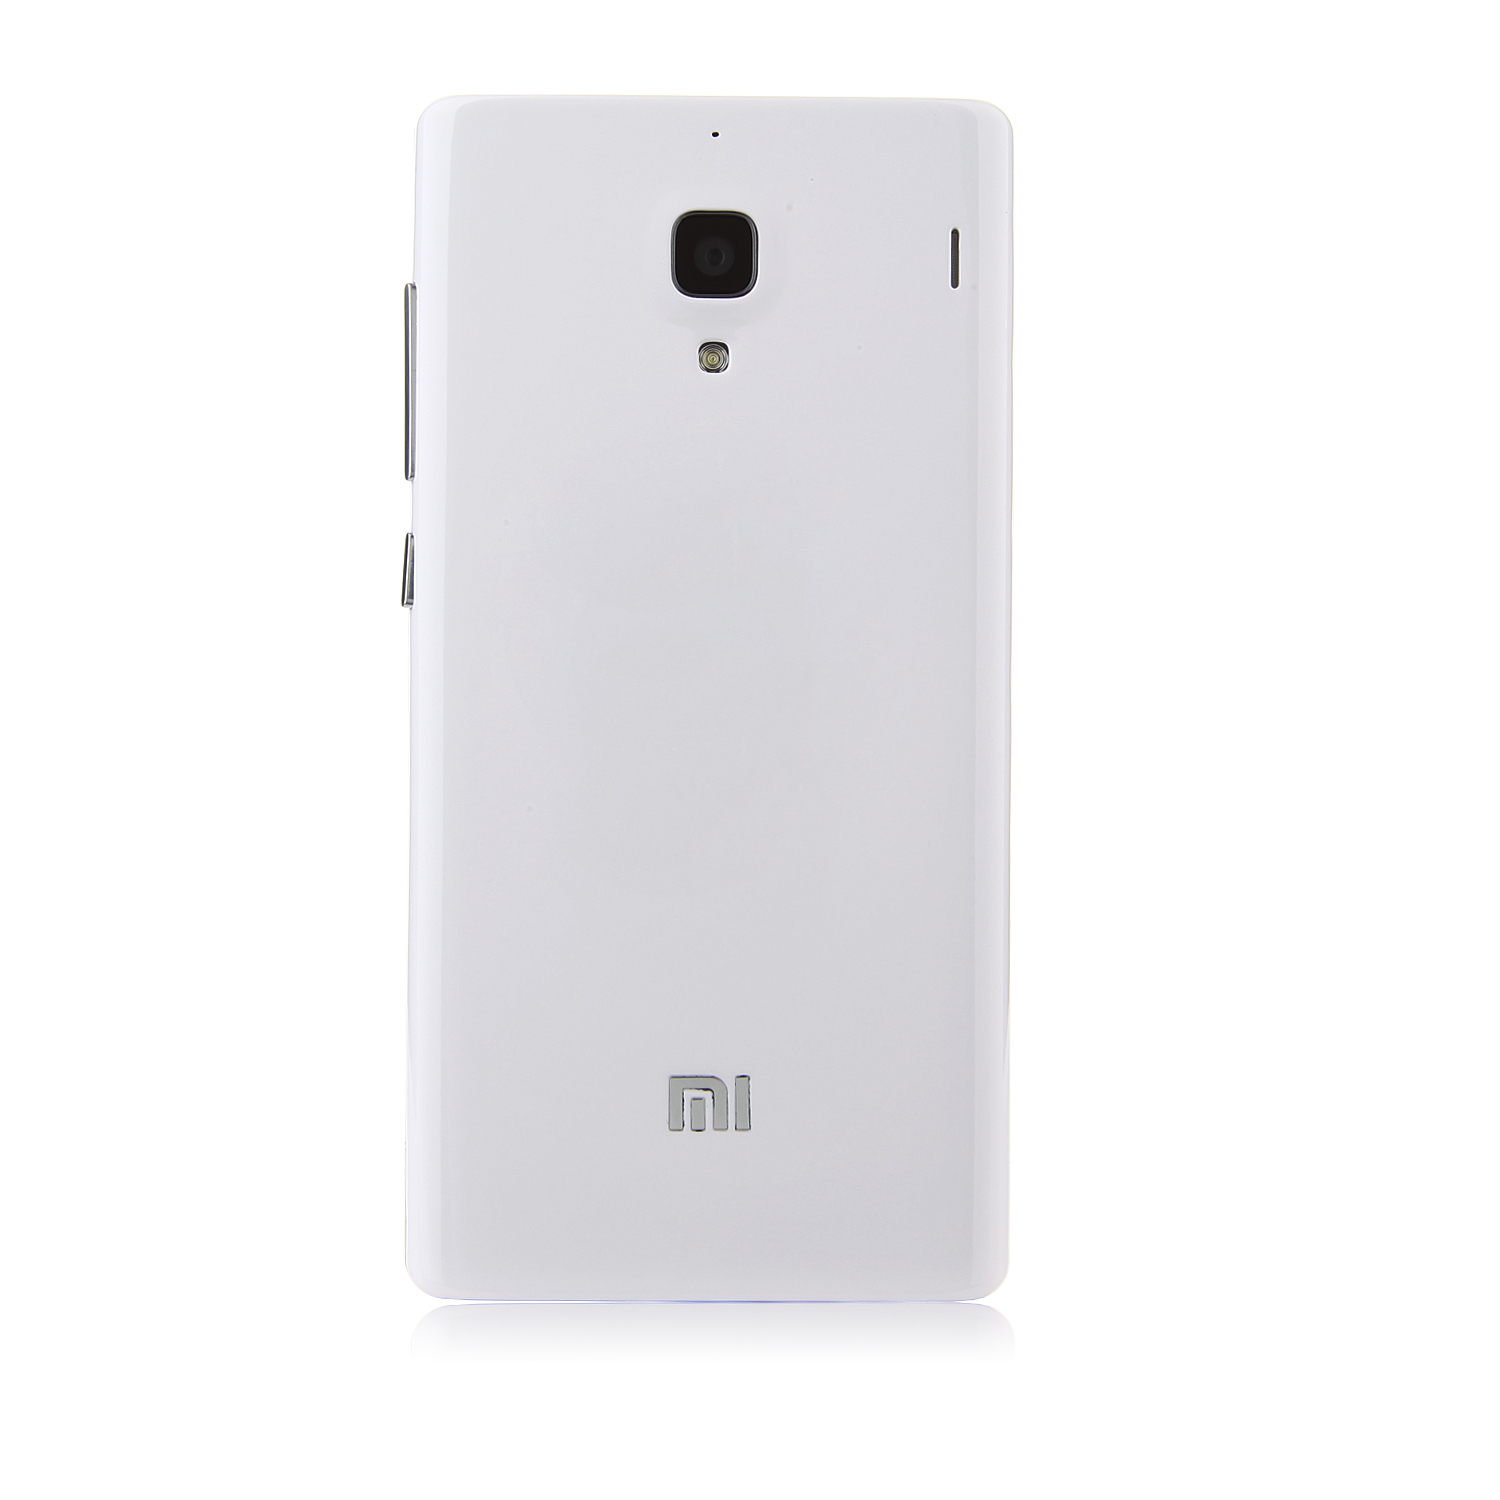 Replacement Battery Cover Back Case Frosted For Xiaomi Redmi 1s Grey Smartphone White